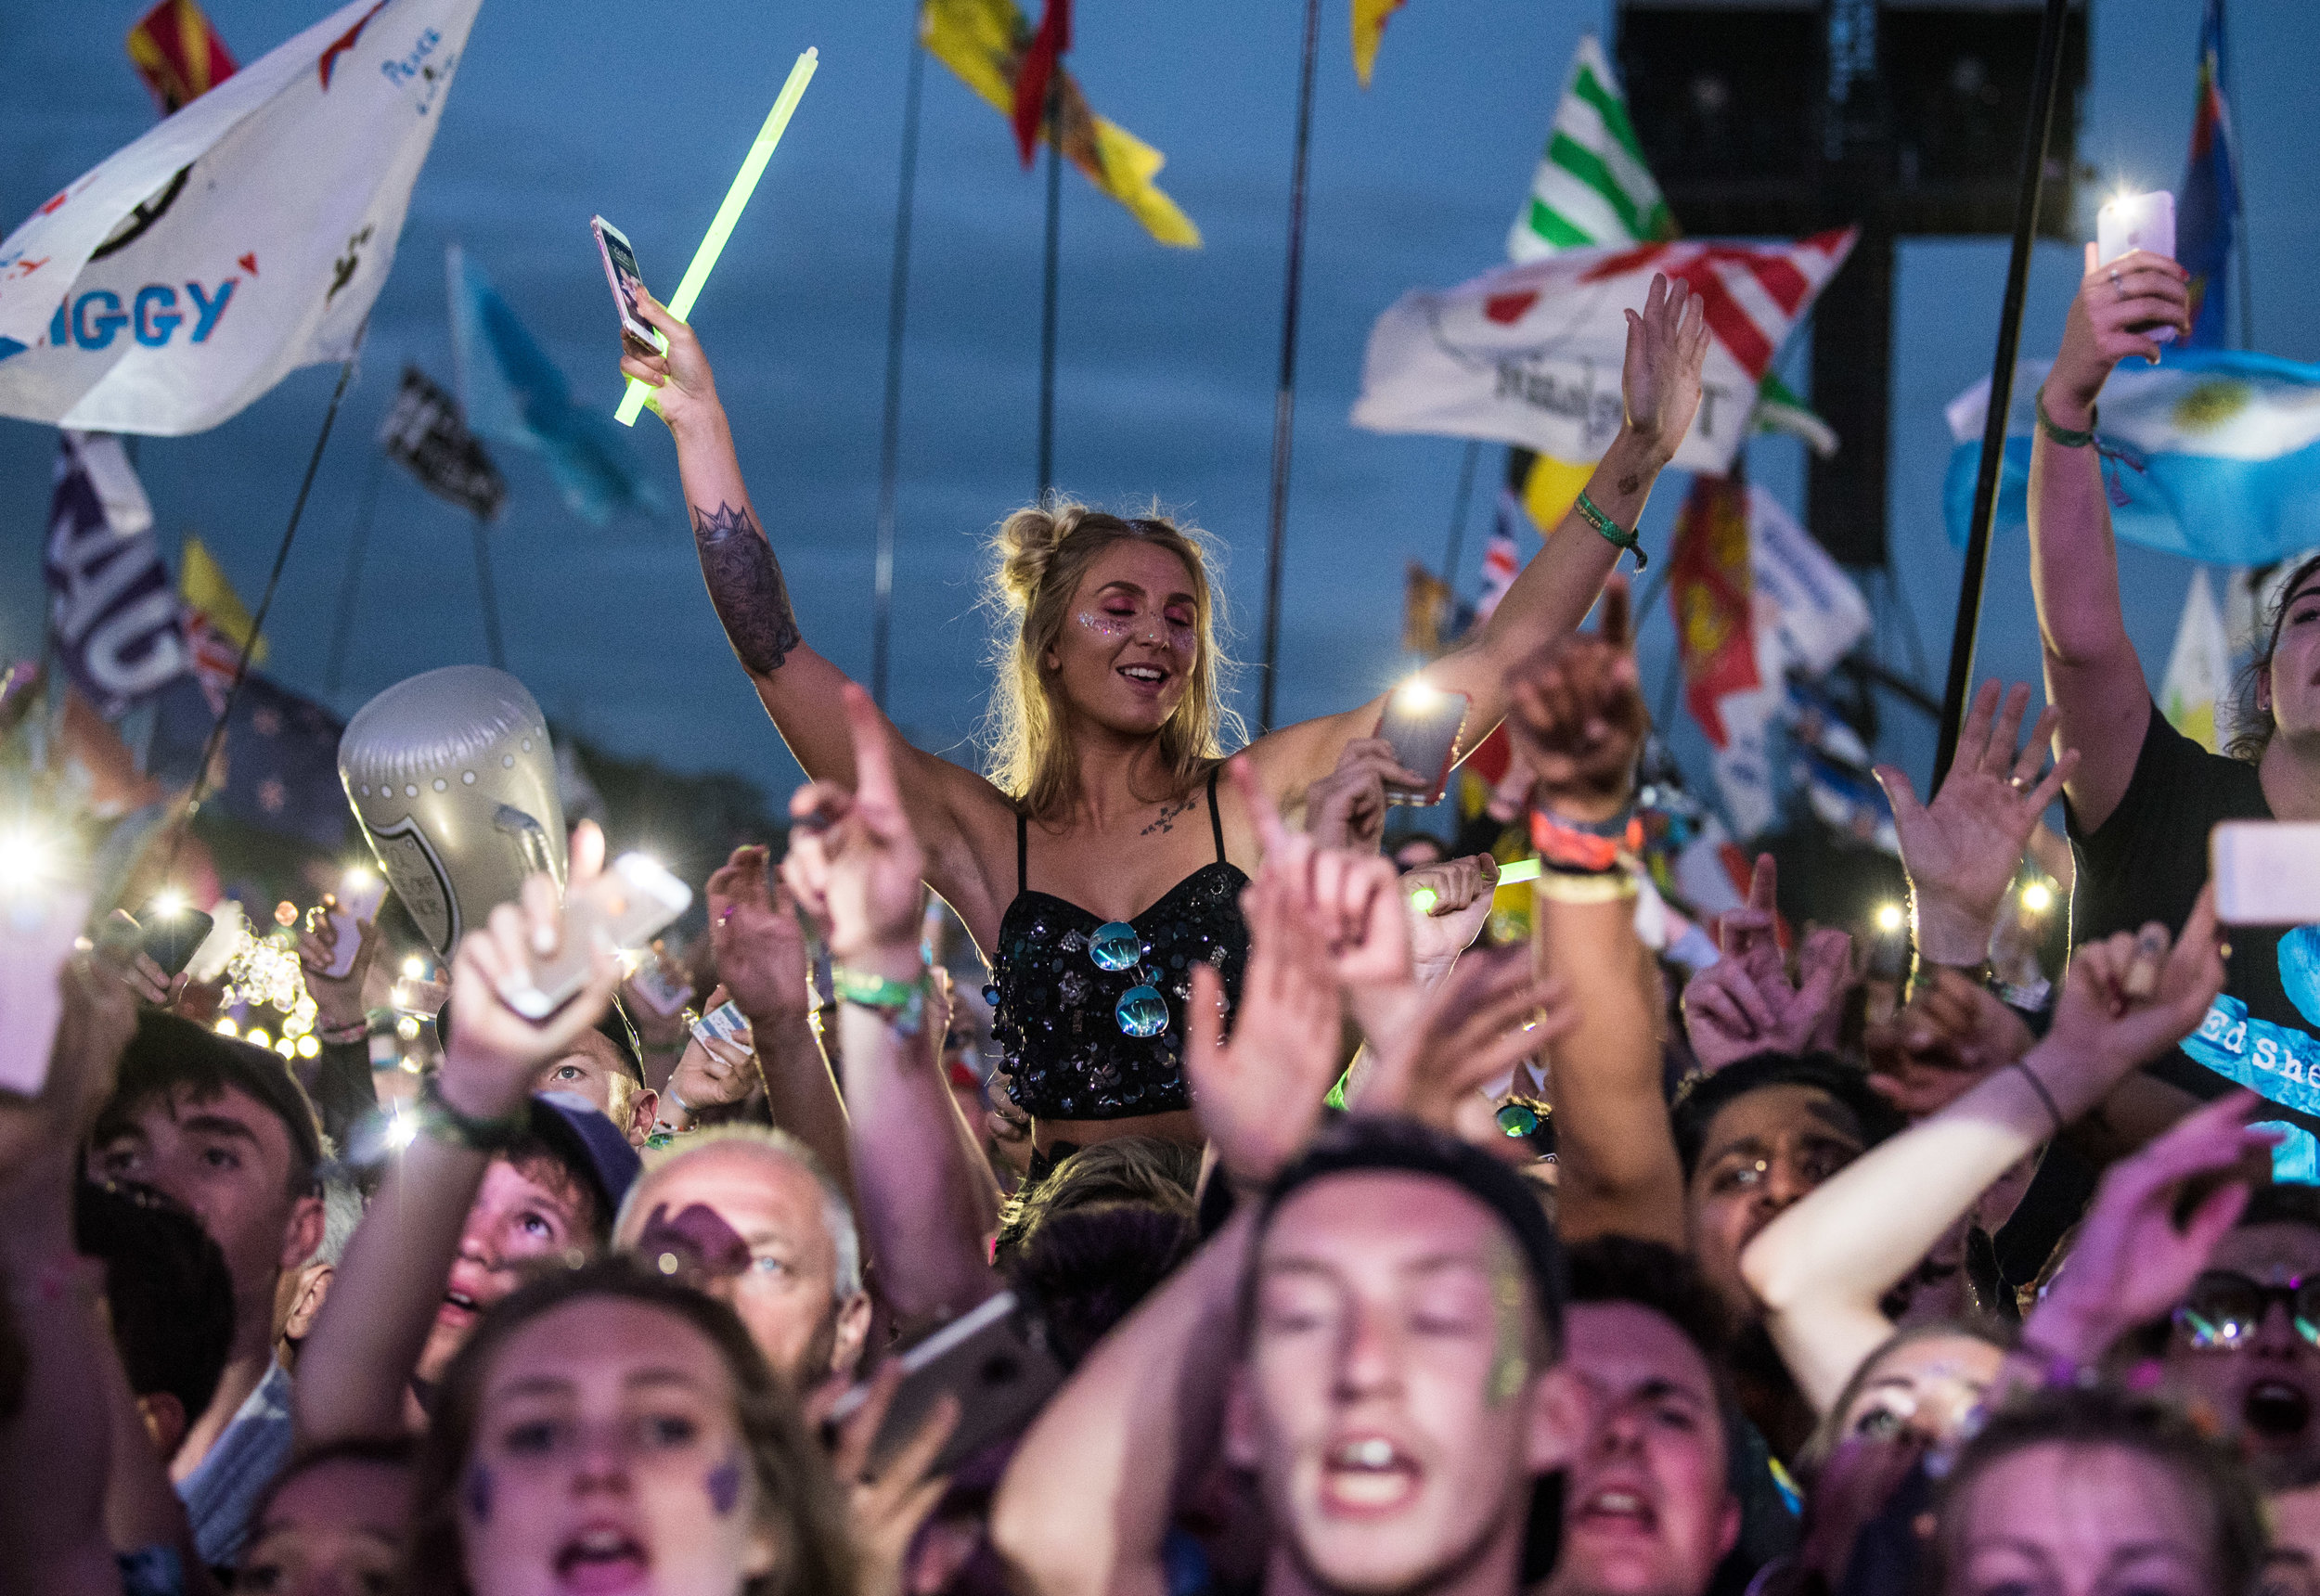 Crowd watching Ed Sheeran performing on the Pyramid Stage